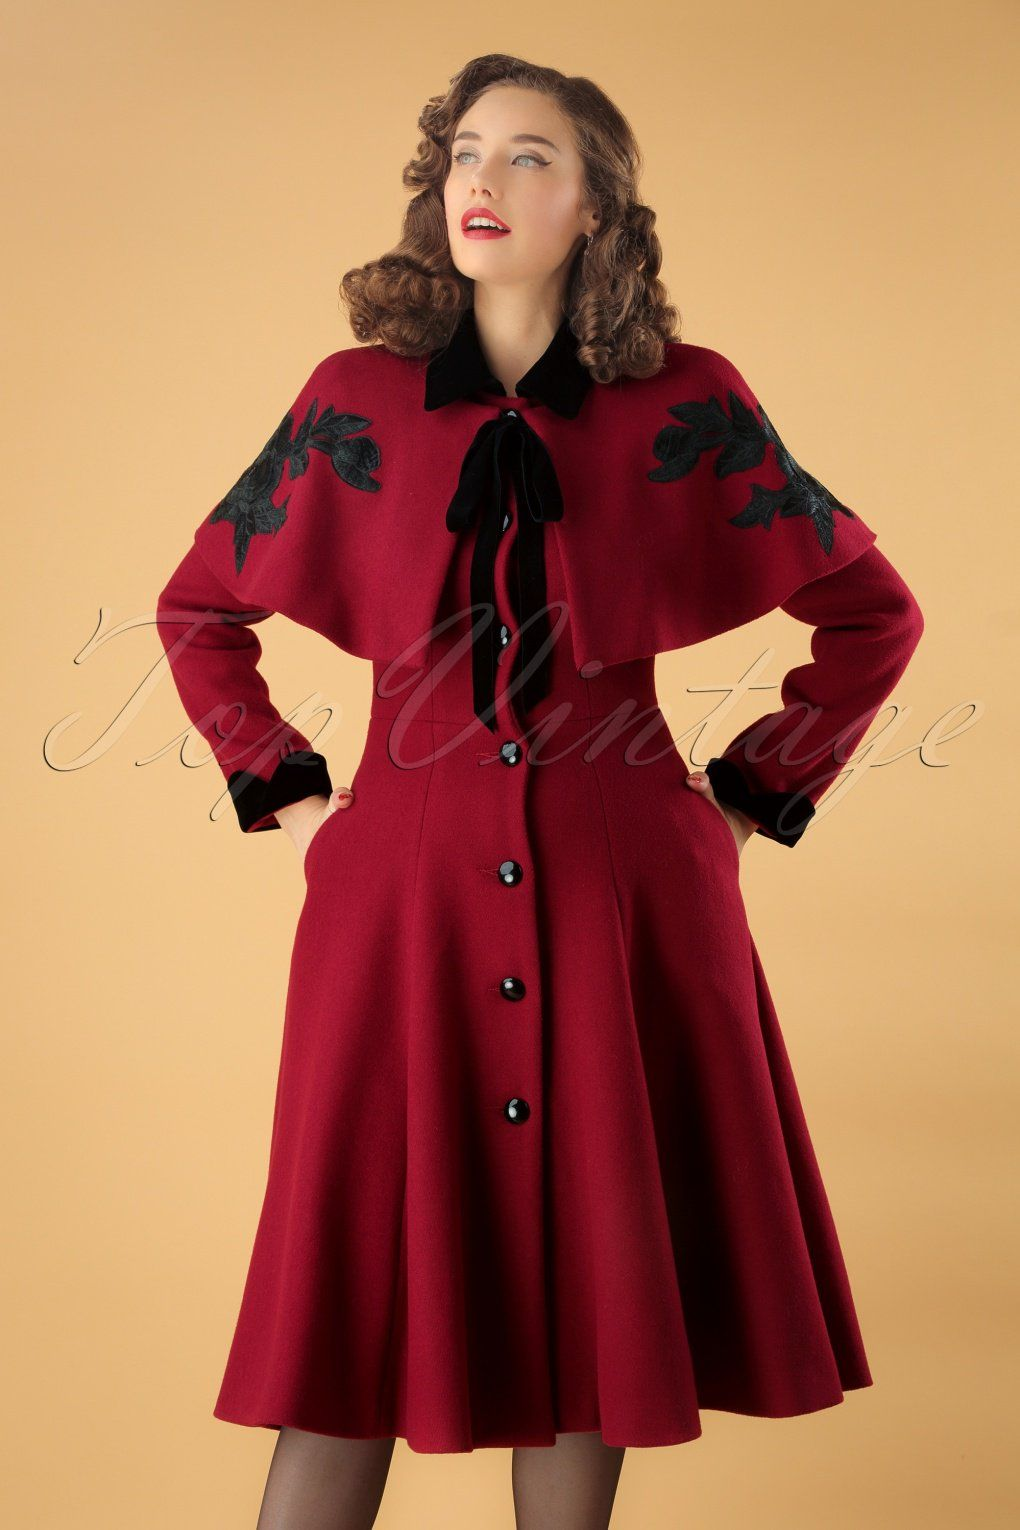 Collectif Clothing 40s Claudia Coat And Roses Cape in